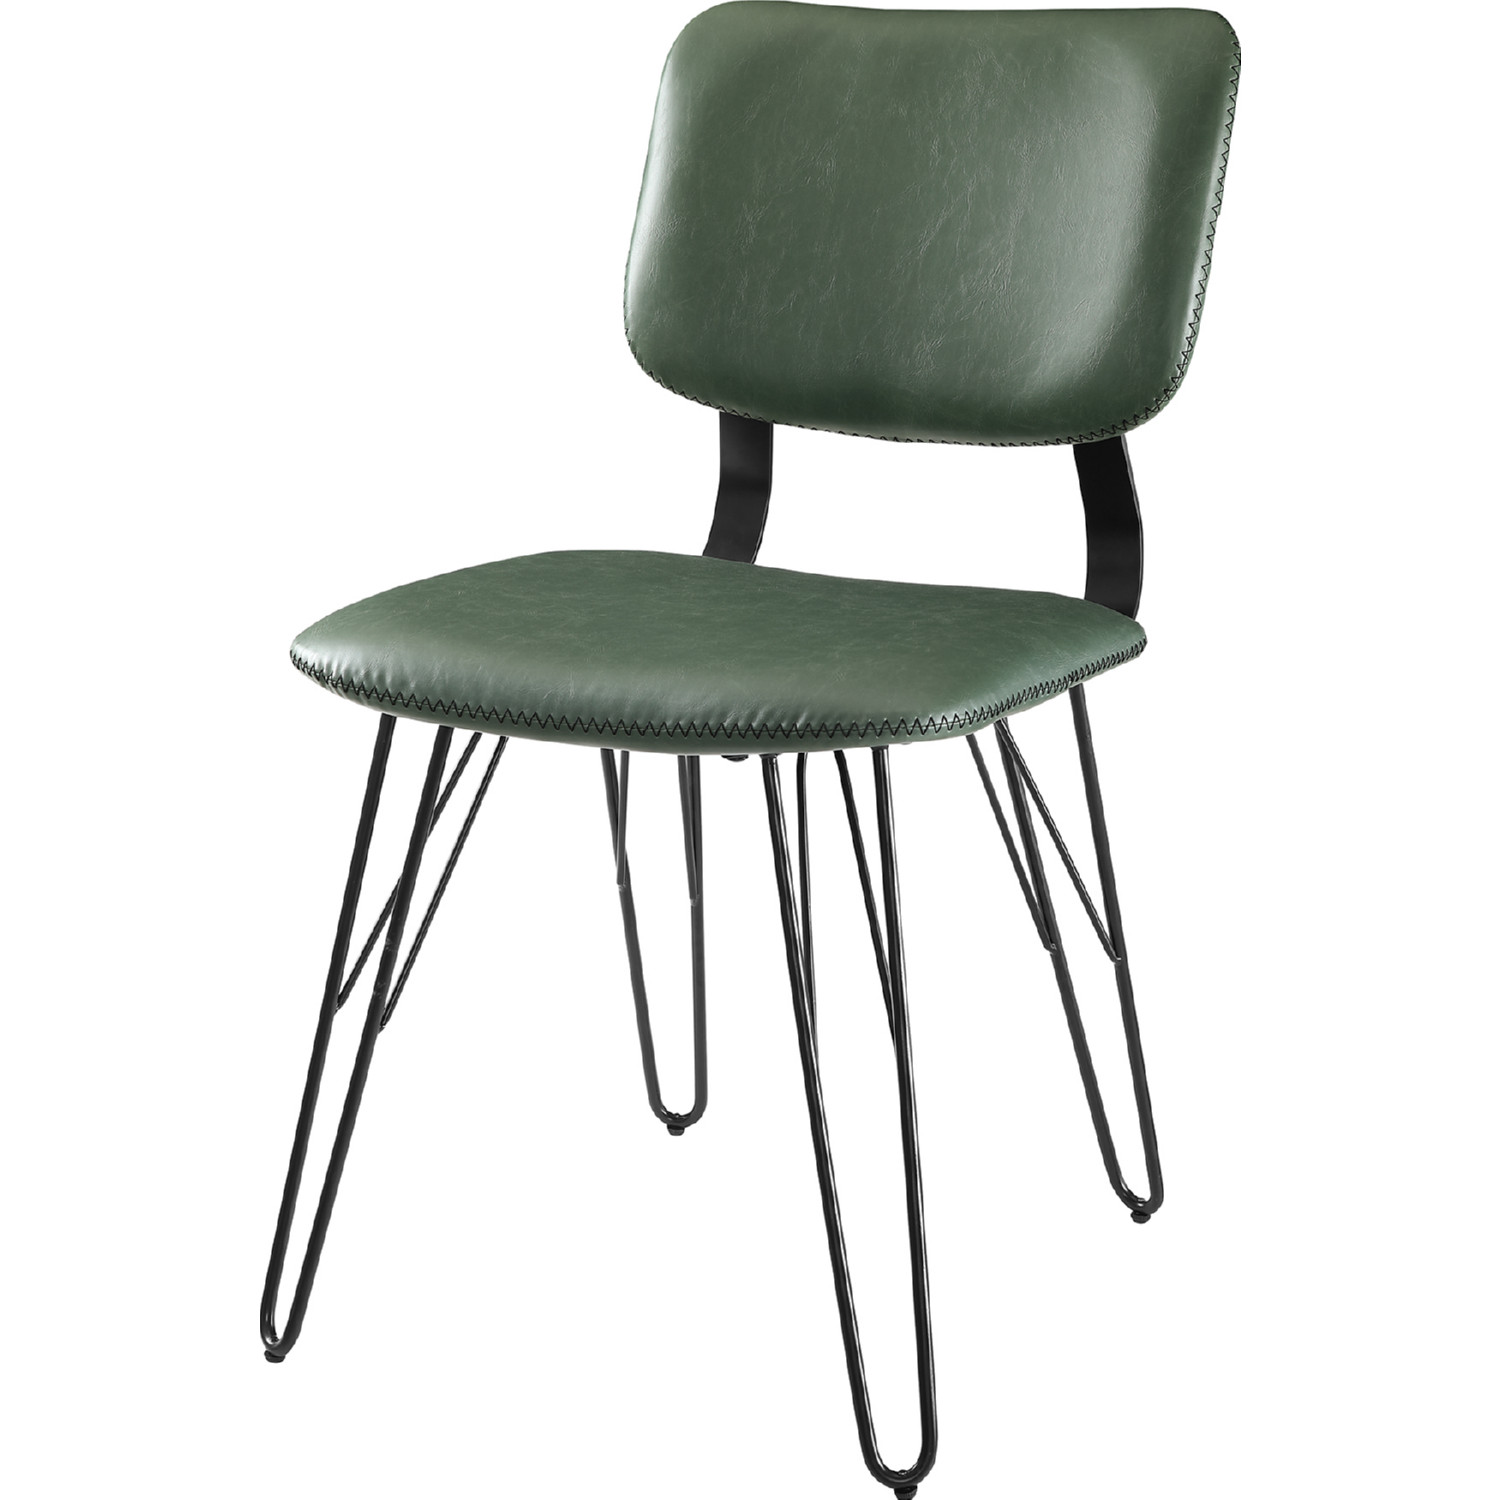 Mid Century Dining Chair In Green Poly On Hairpin Legs Set Of 2 By Walker Edison